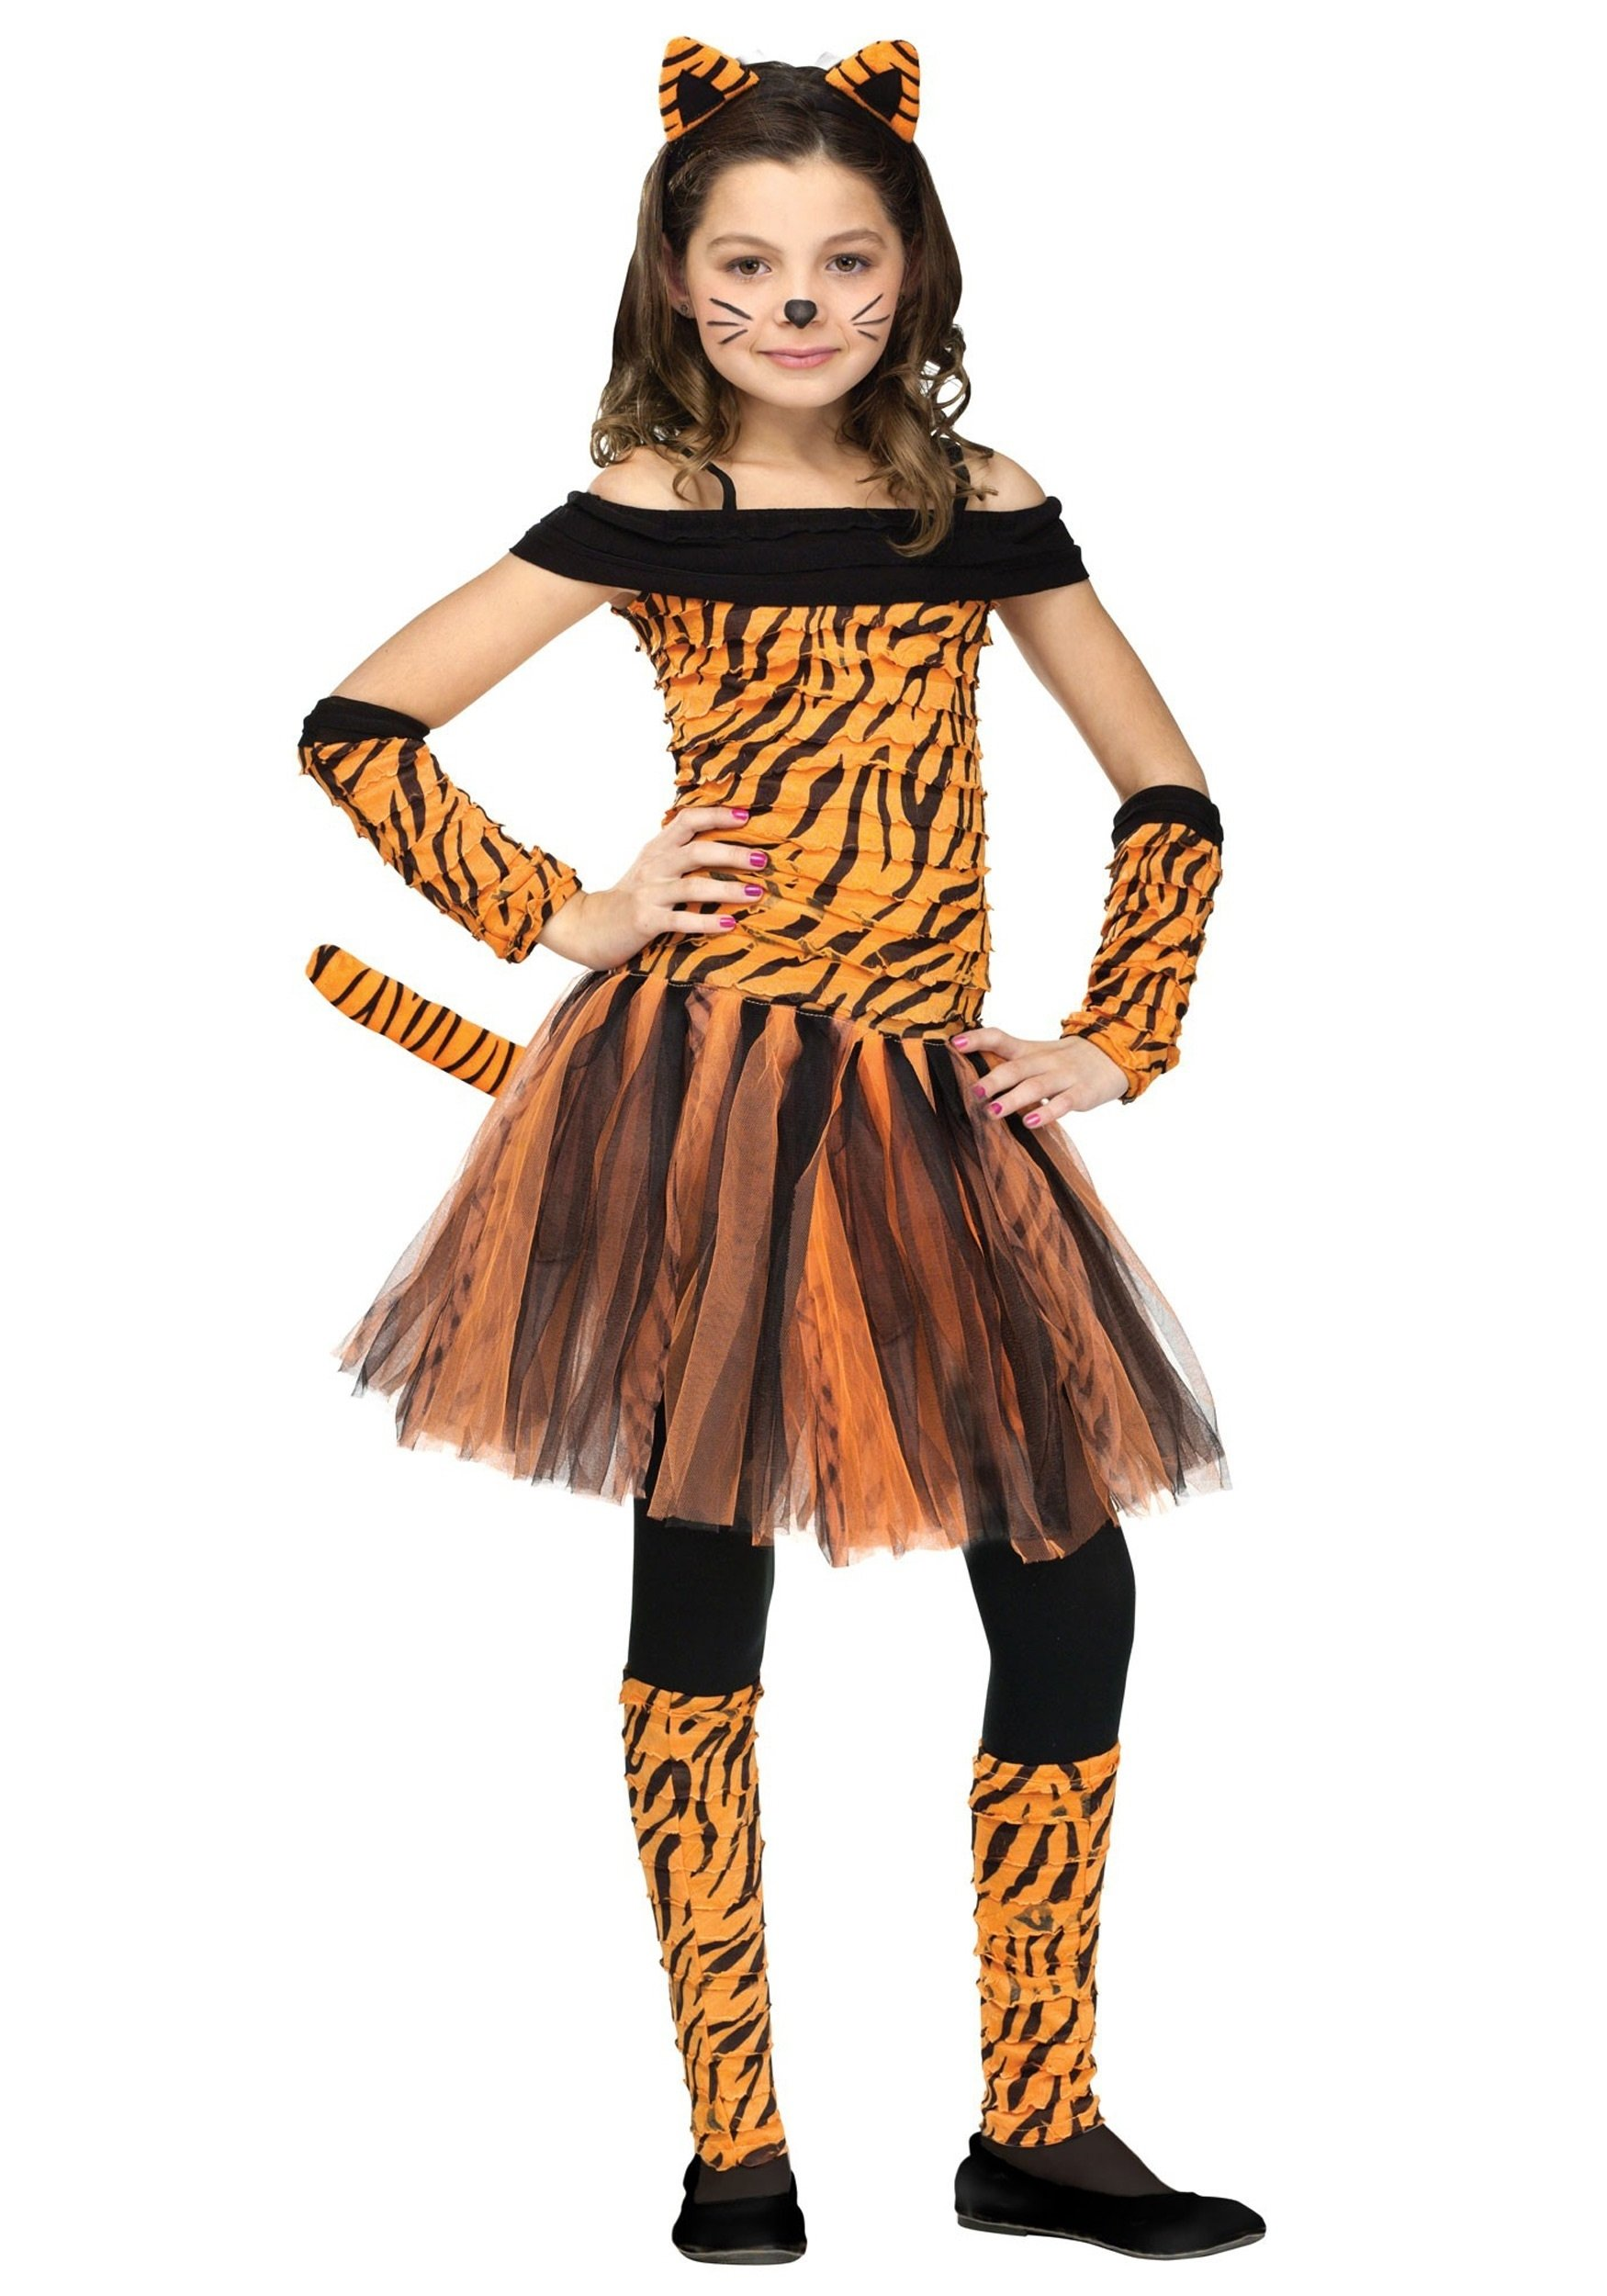 10 Nice Ideas For Halloween Costumes For Girls girls tigress costume 2020